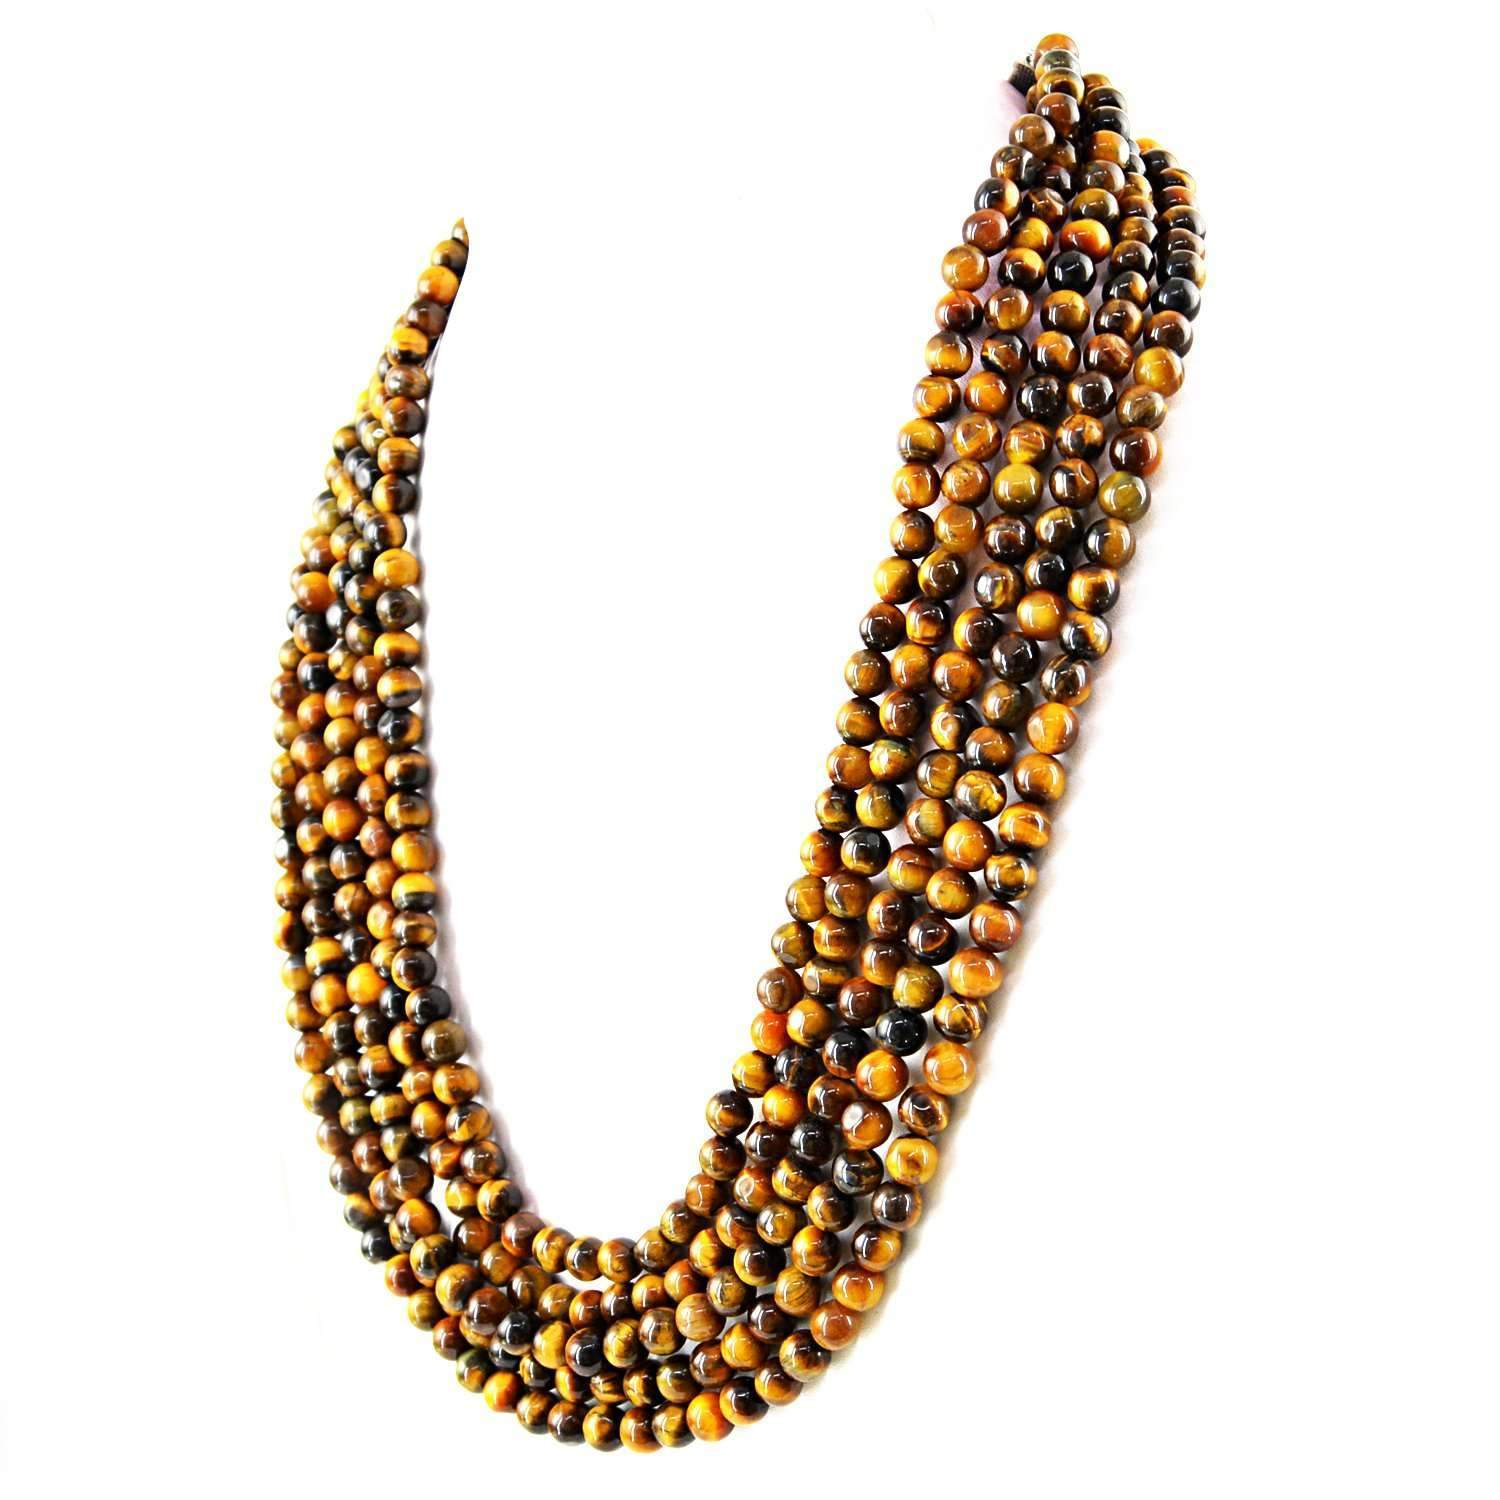 gemsmore:Natural Golden Tiger Eye Necklace Round Beads - 5 Strand